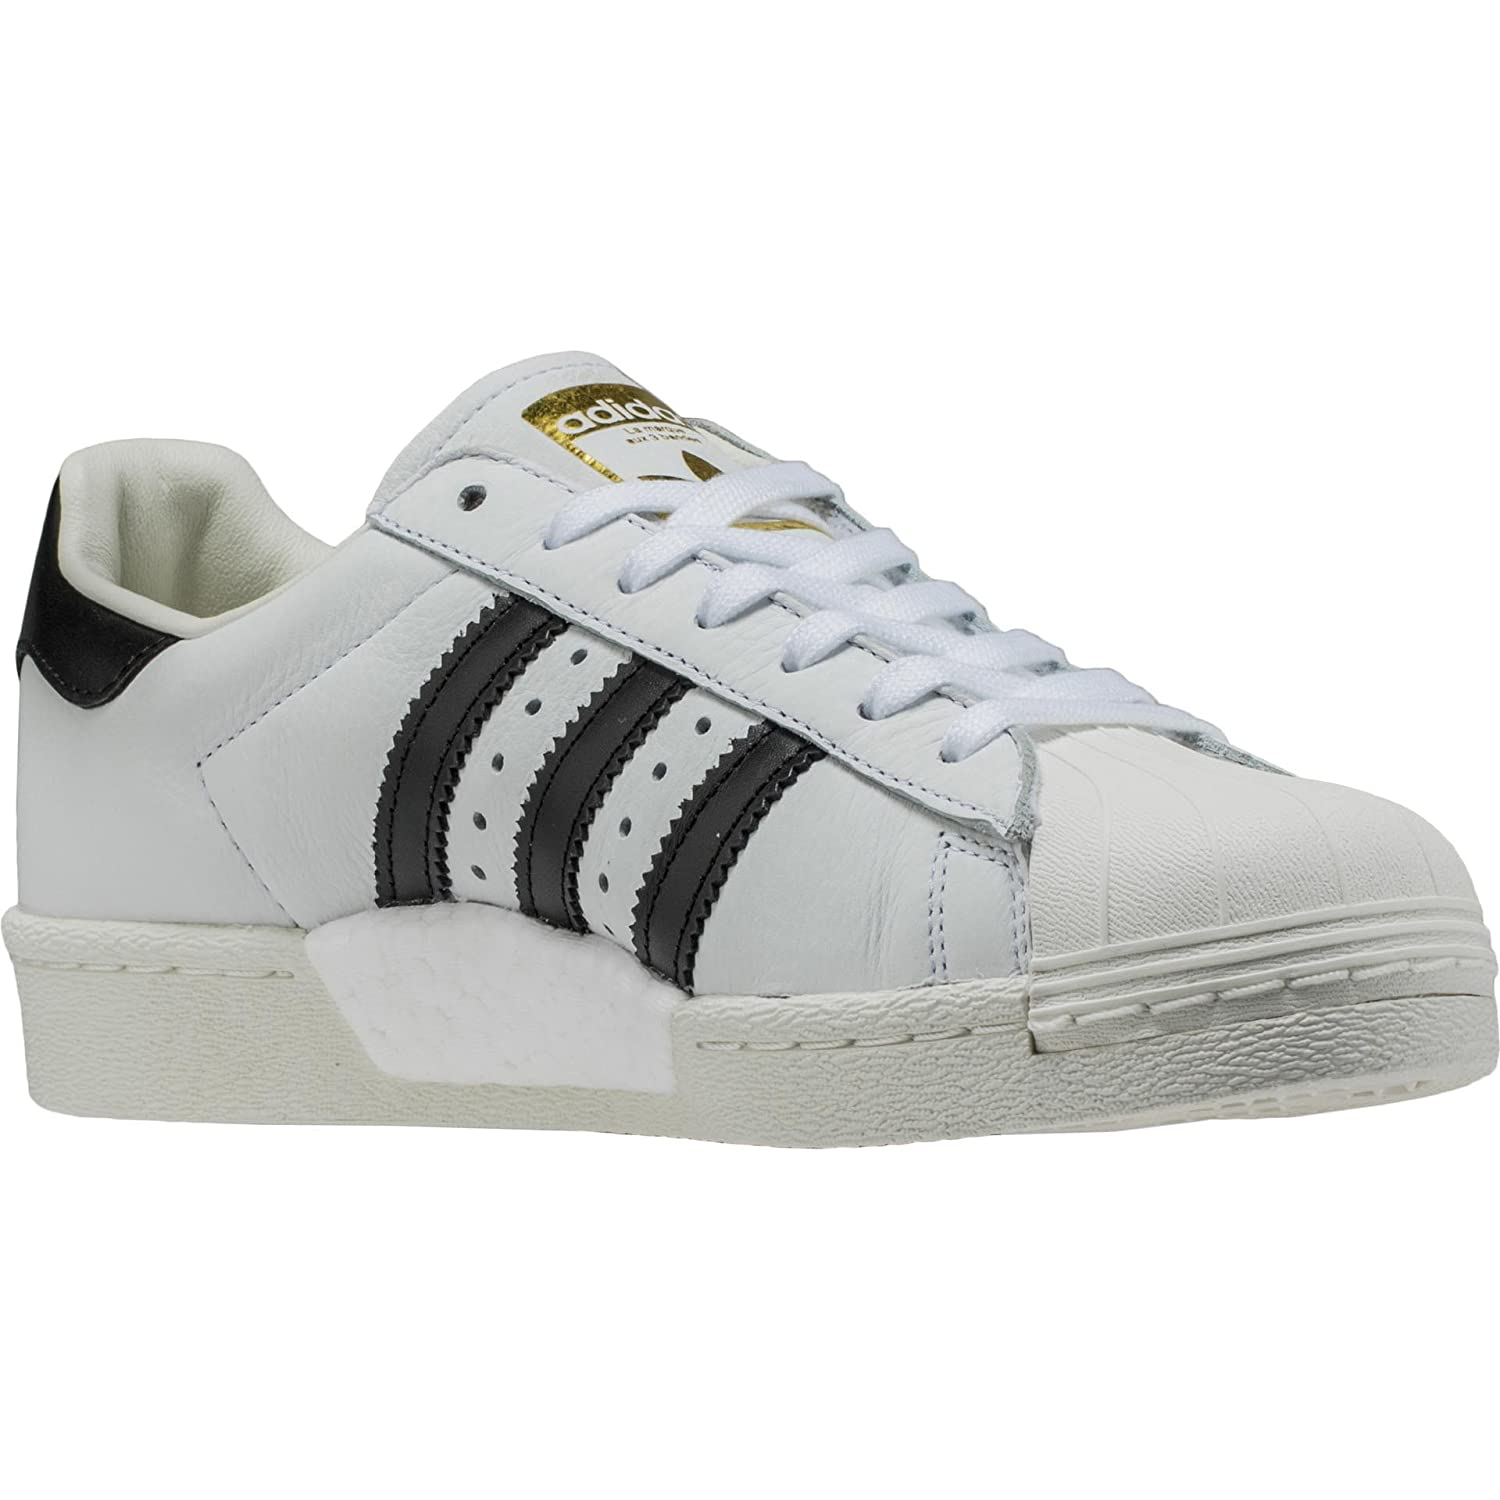 adidas Originals Herren Sneakers Superstar Ray Blue S75881 Ftwwht cblack goldmtbb0188